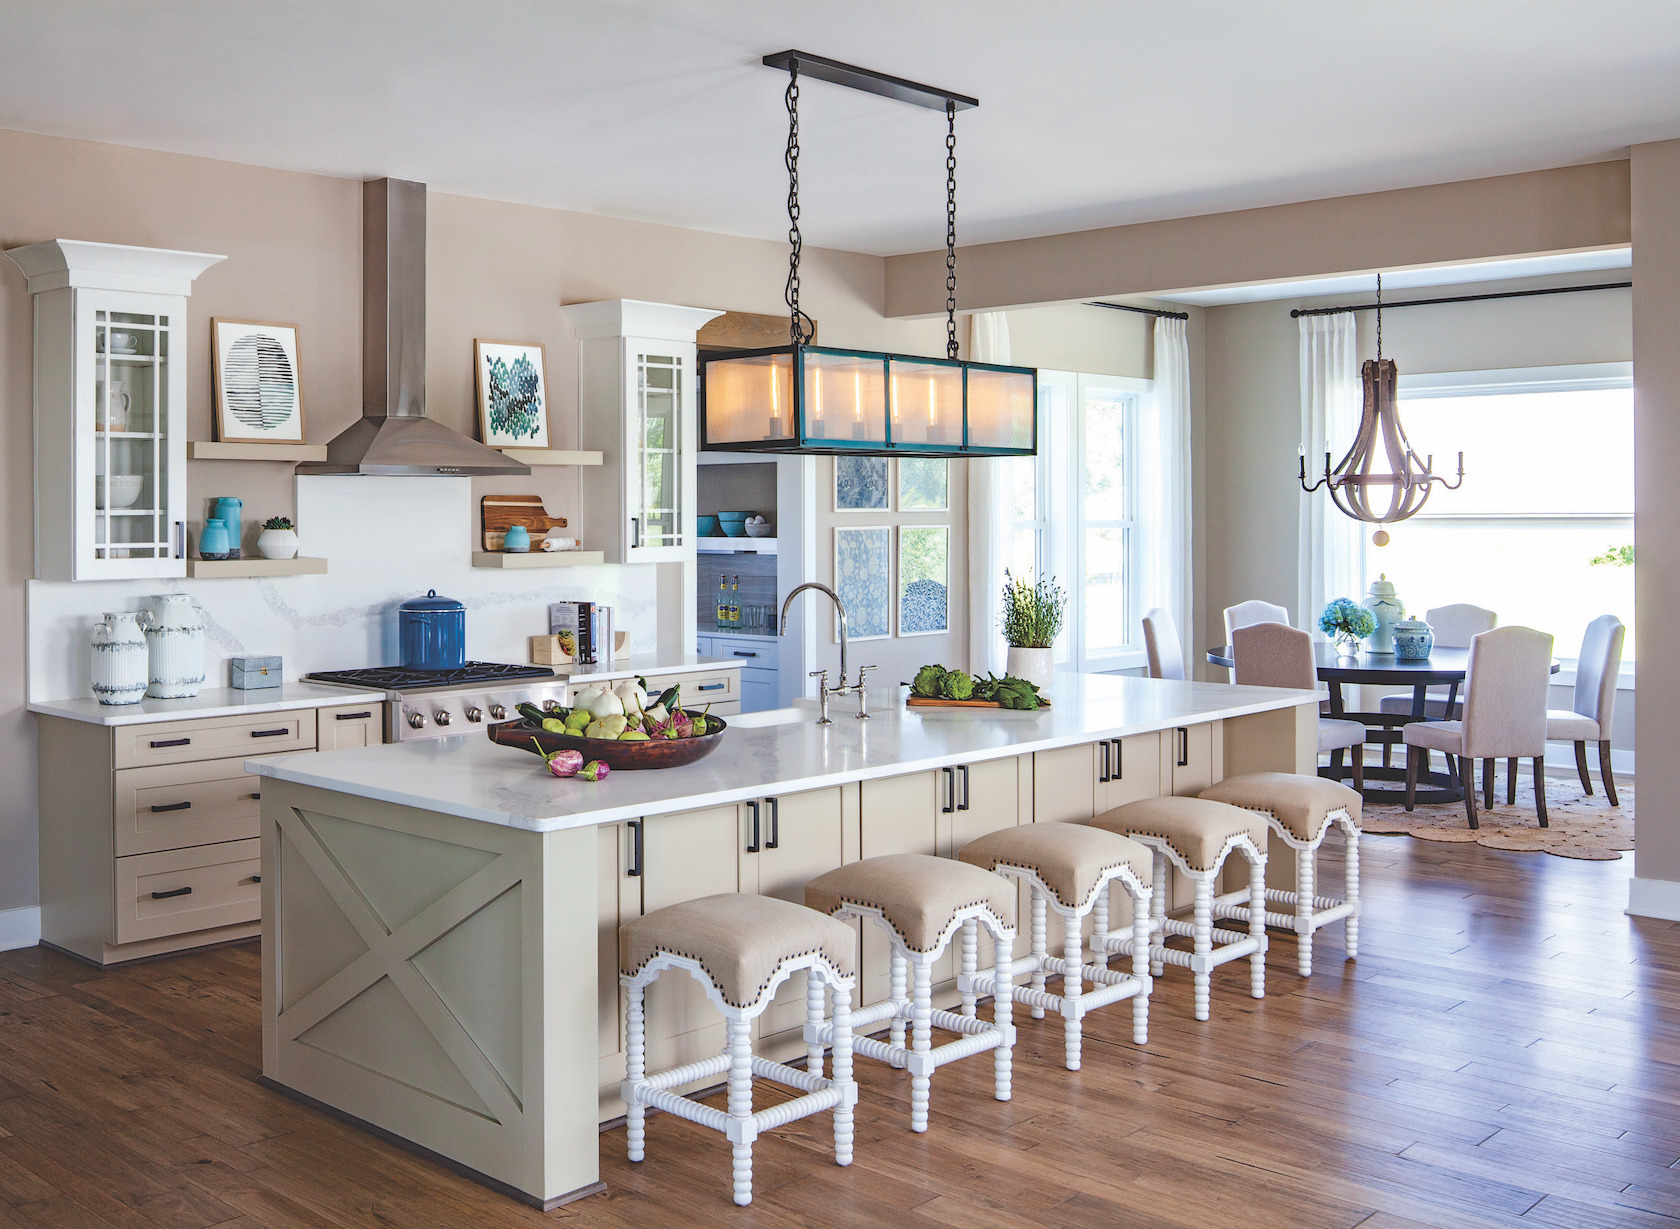 Rectangular exposed bulb pendant and wood chandelier lighting in kitchen